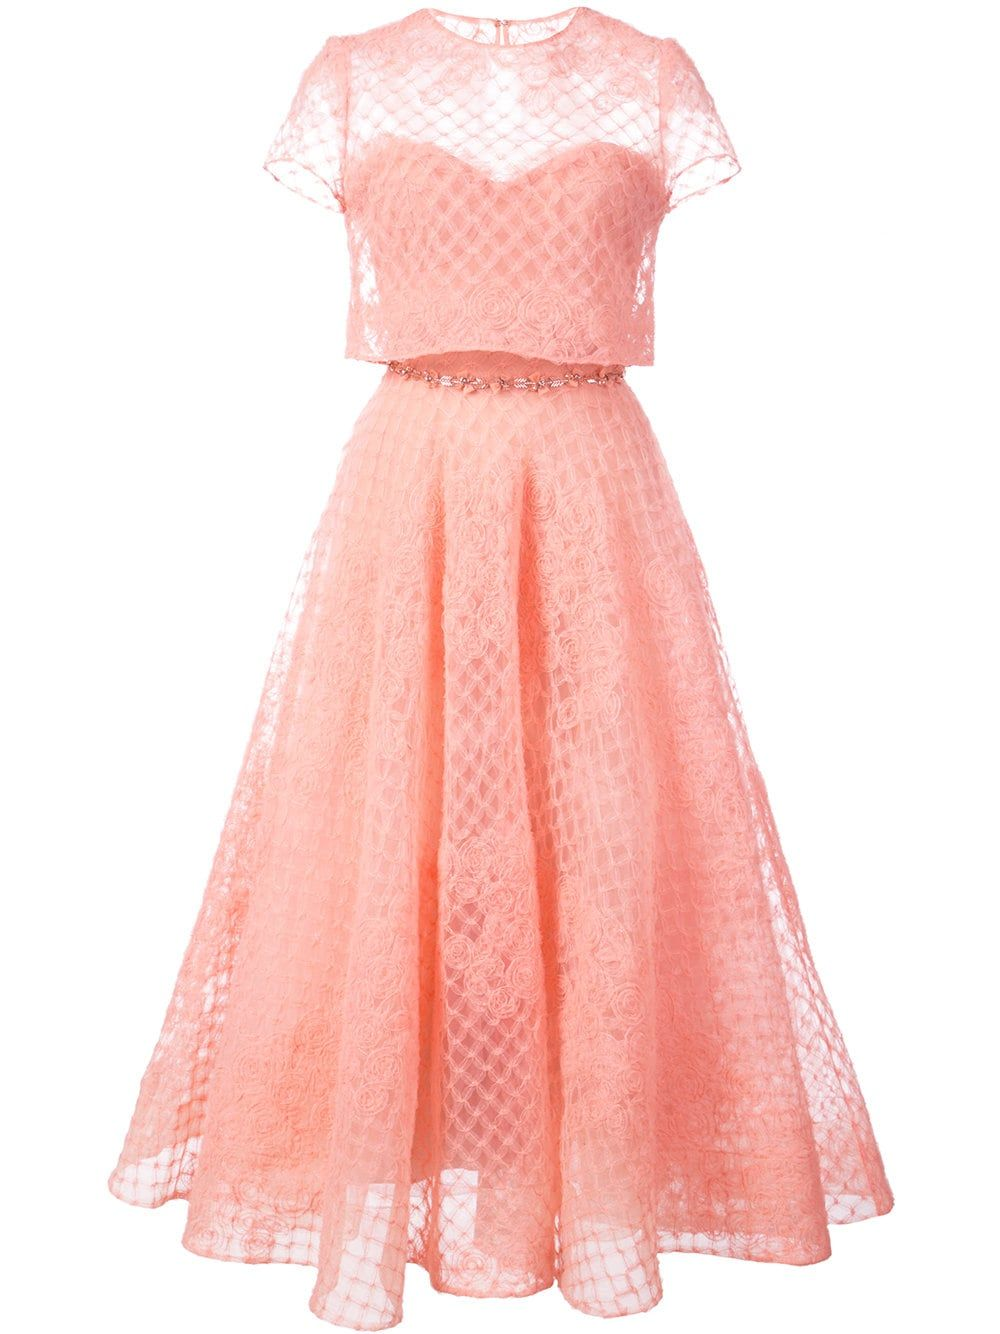 Click on the link to see marchesa notte tulle layered pink dress